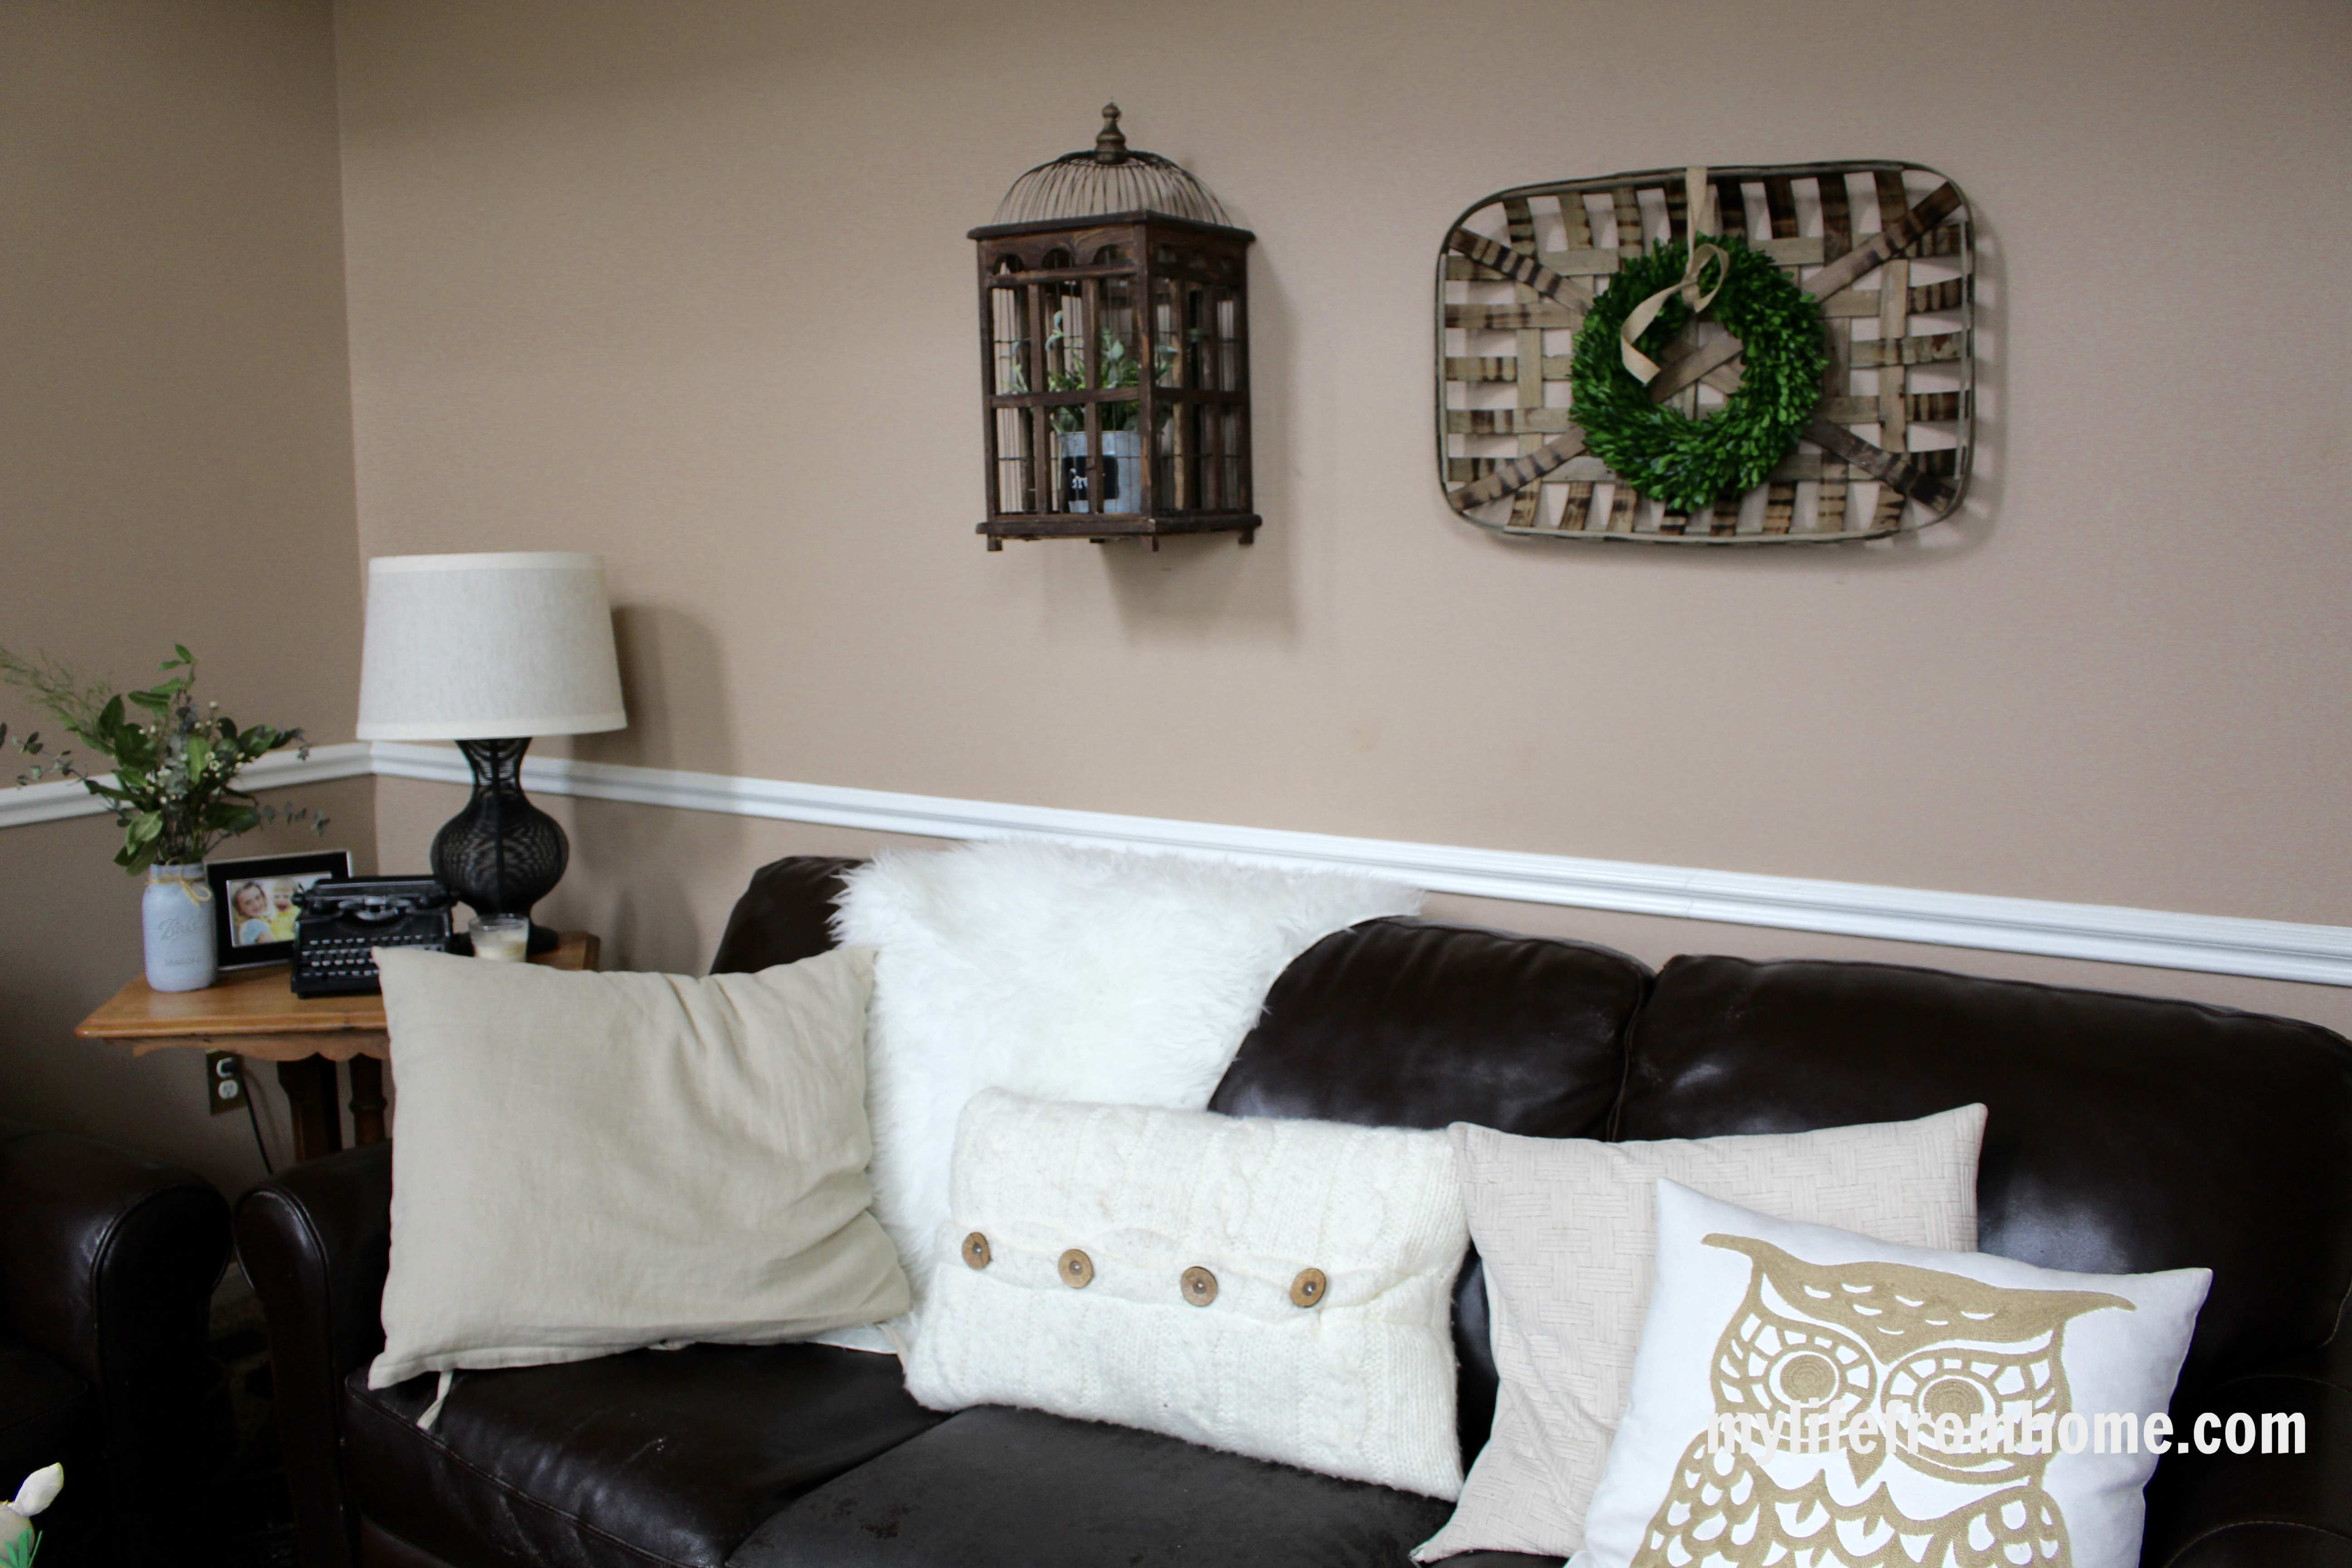 Family Room Decorated for Spring by www.mylifefromhome.com